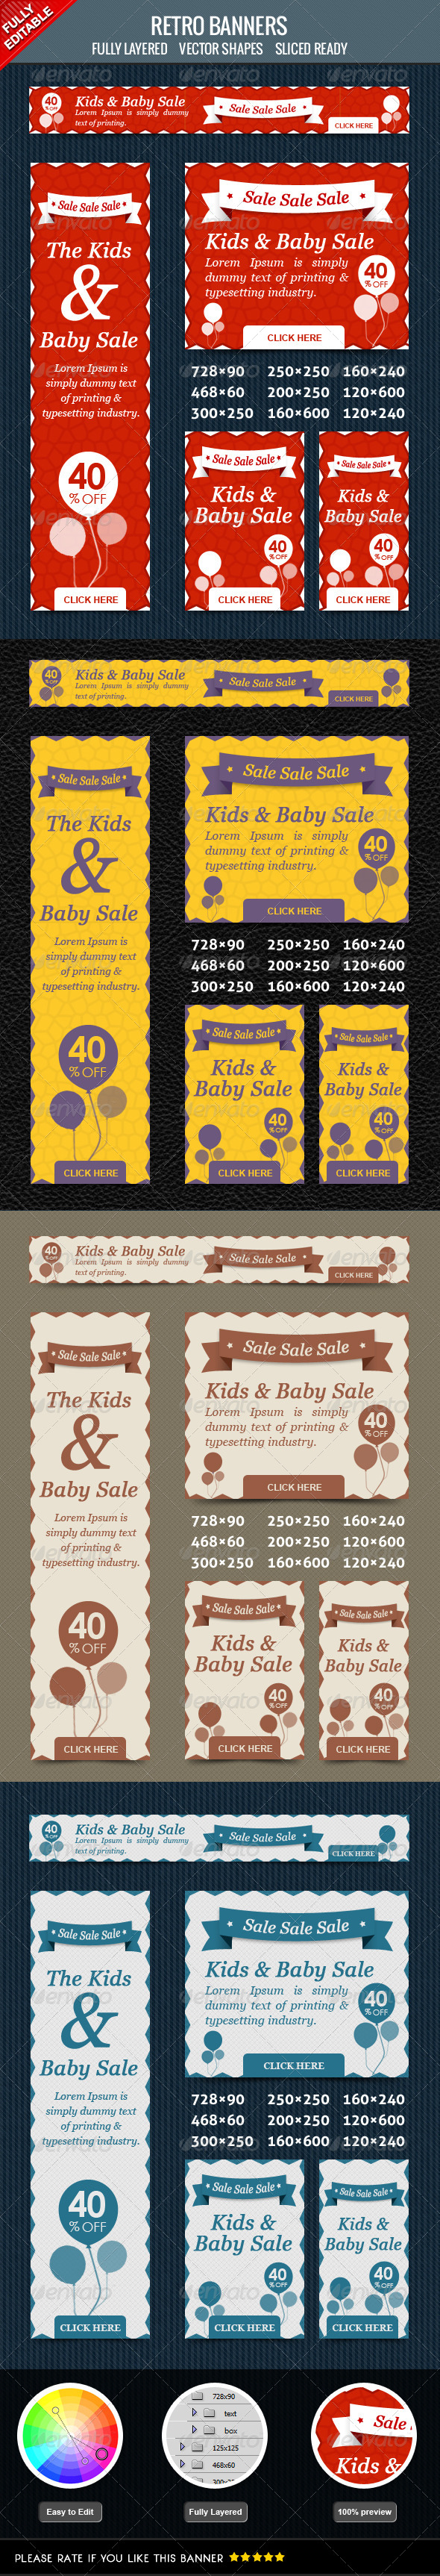 Retro Sales Banner - Banners & Ads Web Elements